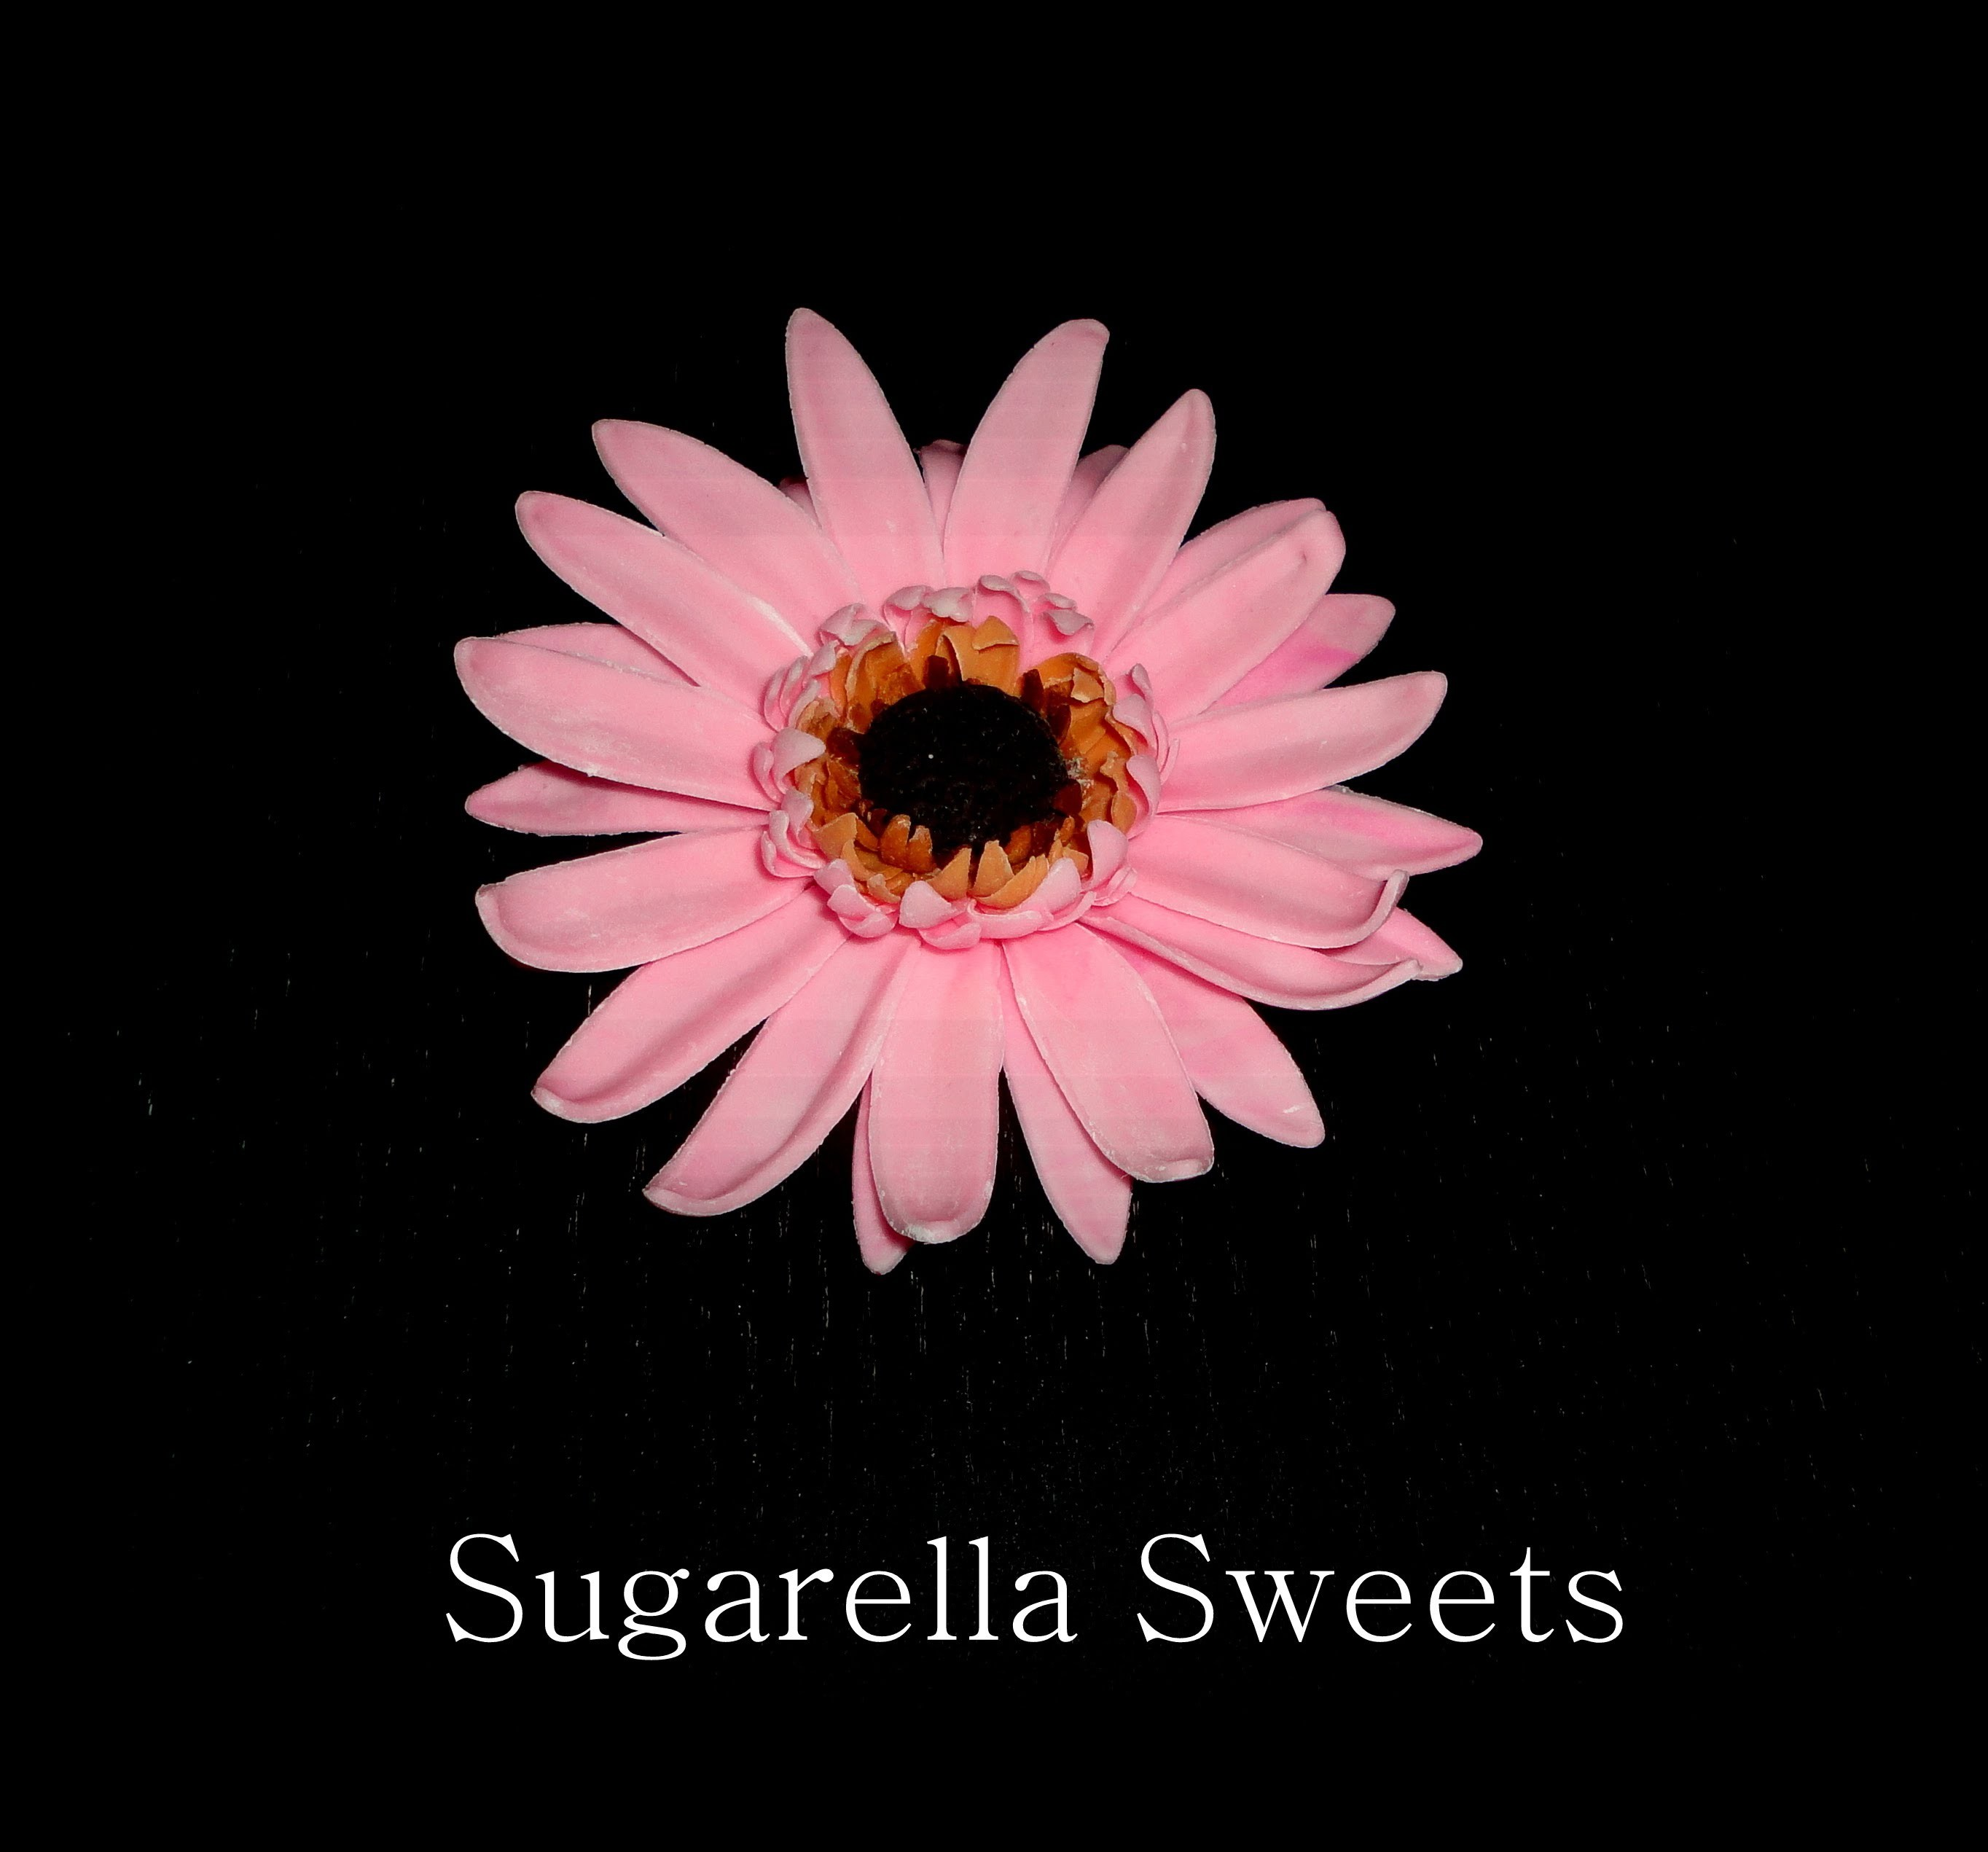 Cake decorating | how to make a sugar flower gerbera | Sugarella sweets